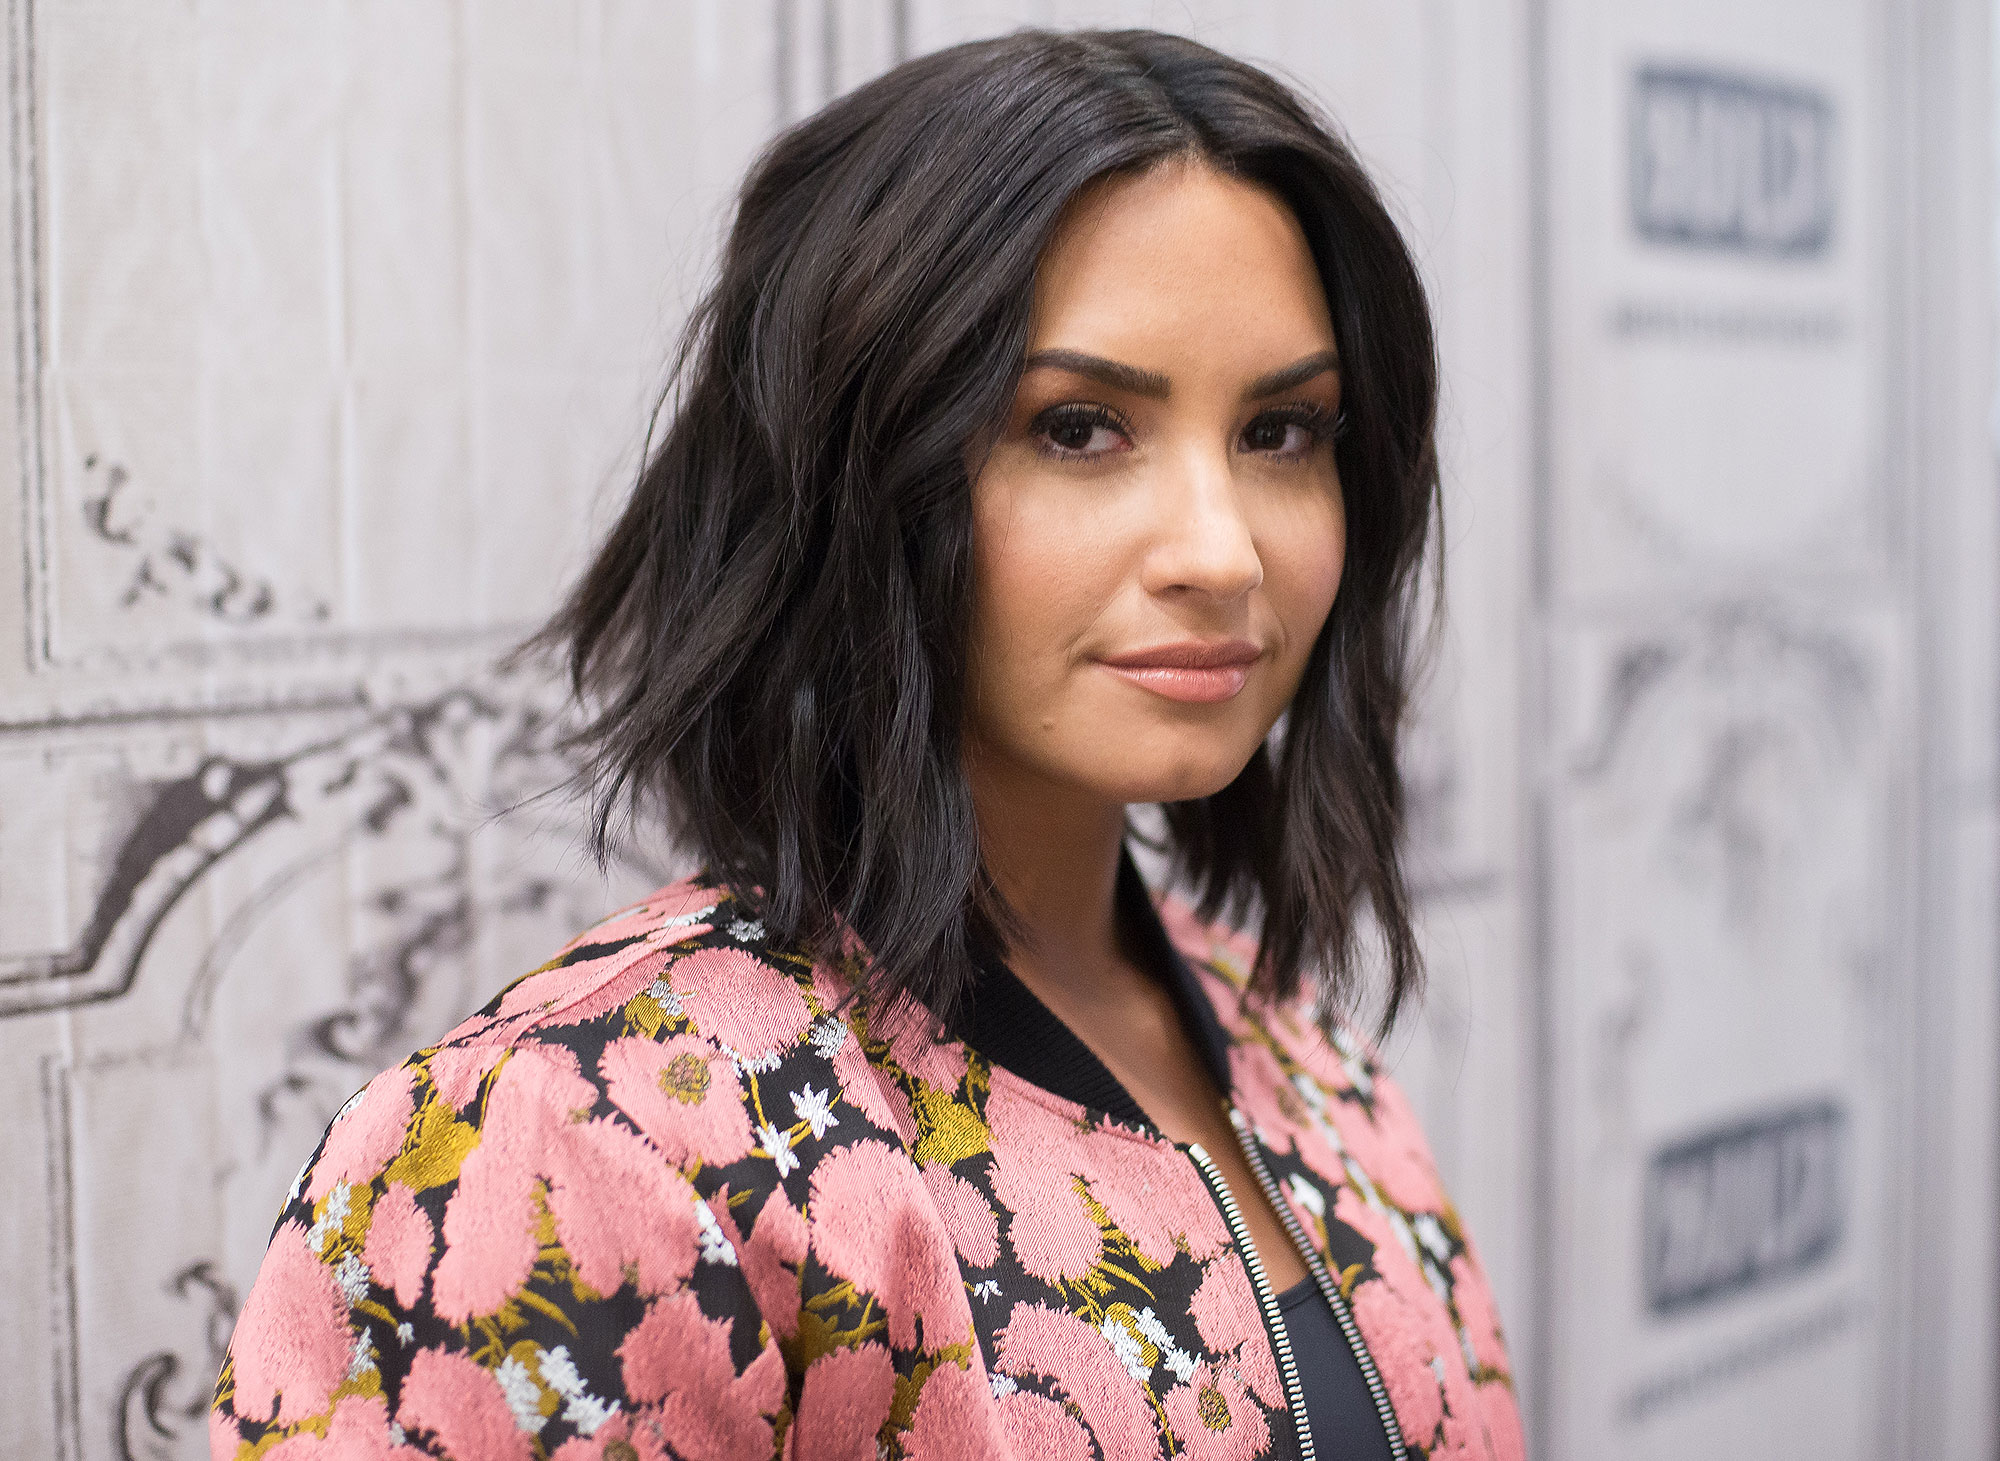 Full Details And Images Of Demi Lovato's Thanksgiving HollywoodGossip